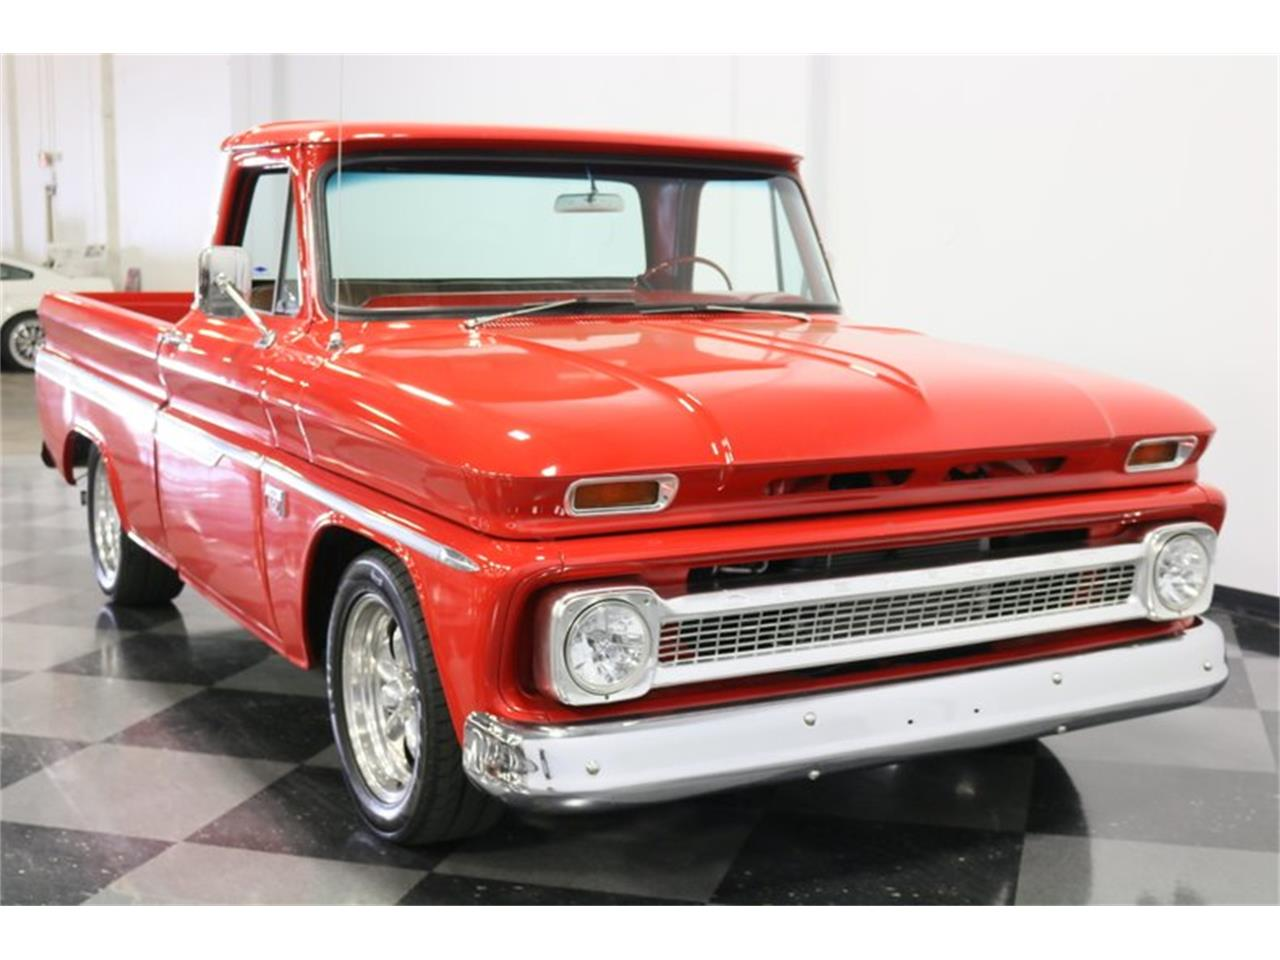 Large Picture of Classic '66 Chevrolet C10 located in Texas Offered by Streetside Classics - Dallas / Fort Worth - PVCV